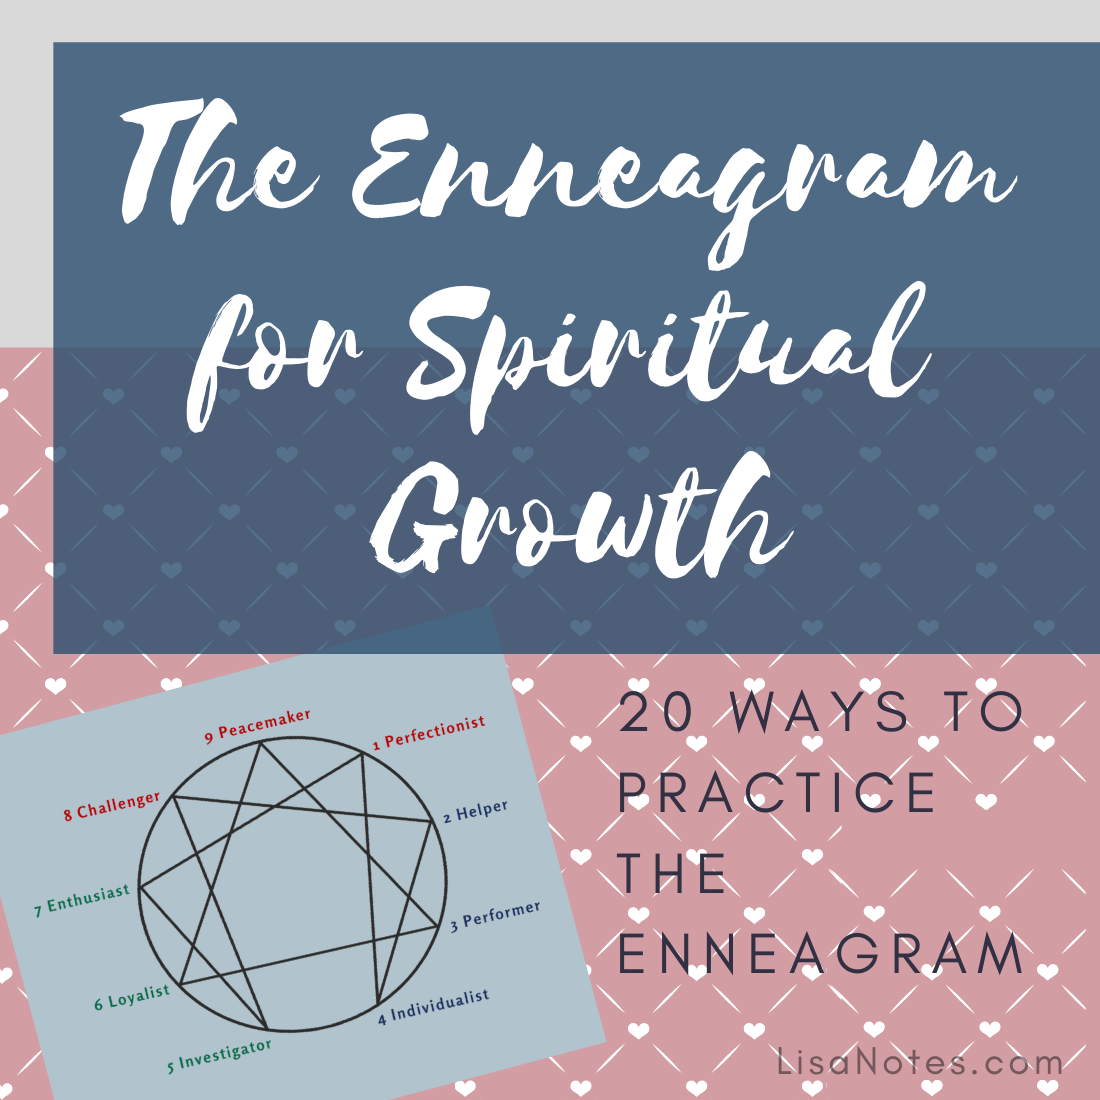 Enneagram Series for Spiritual Growth